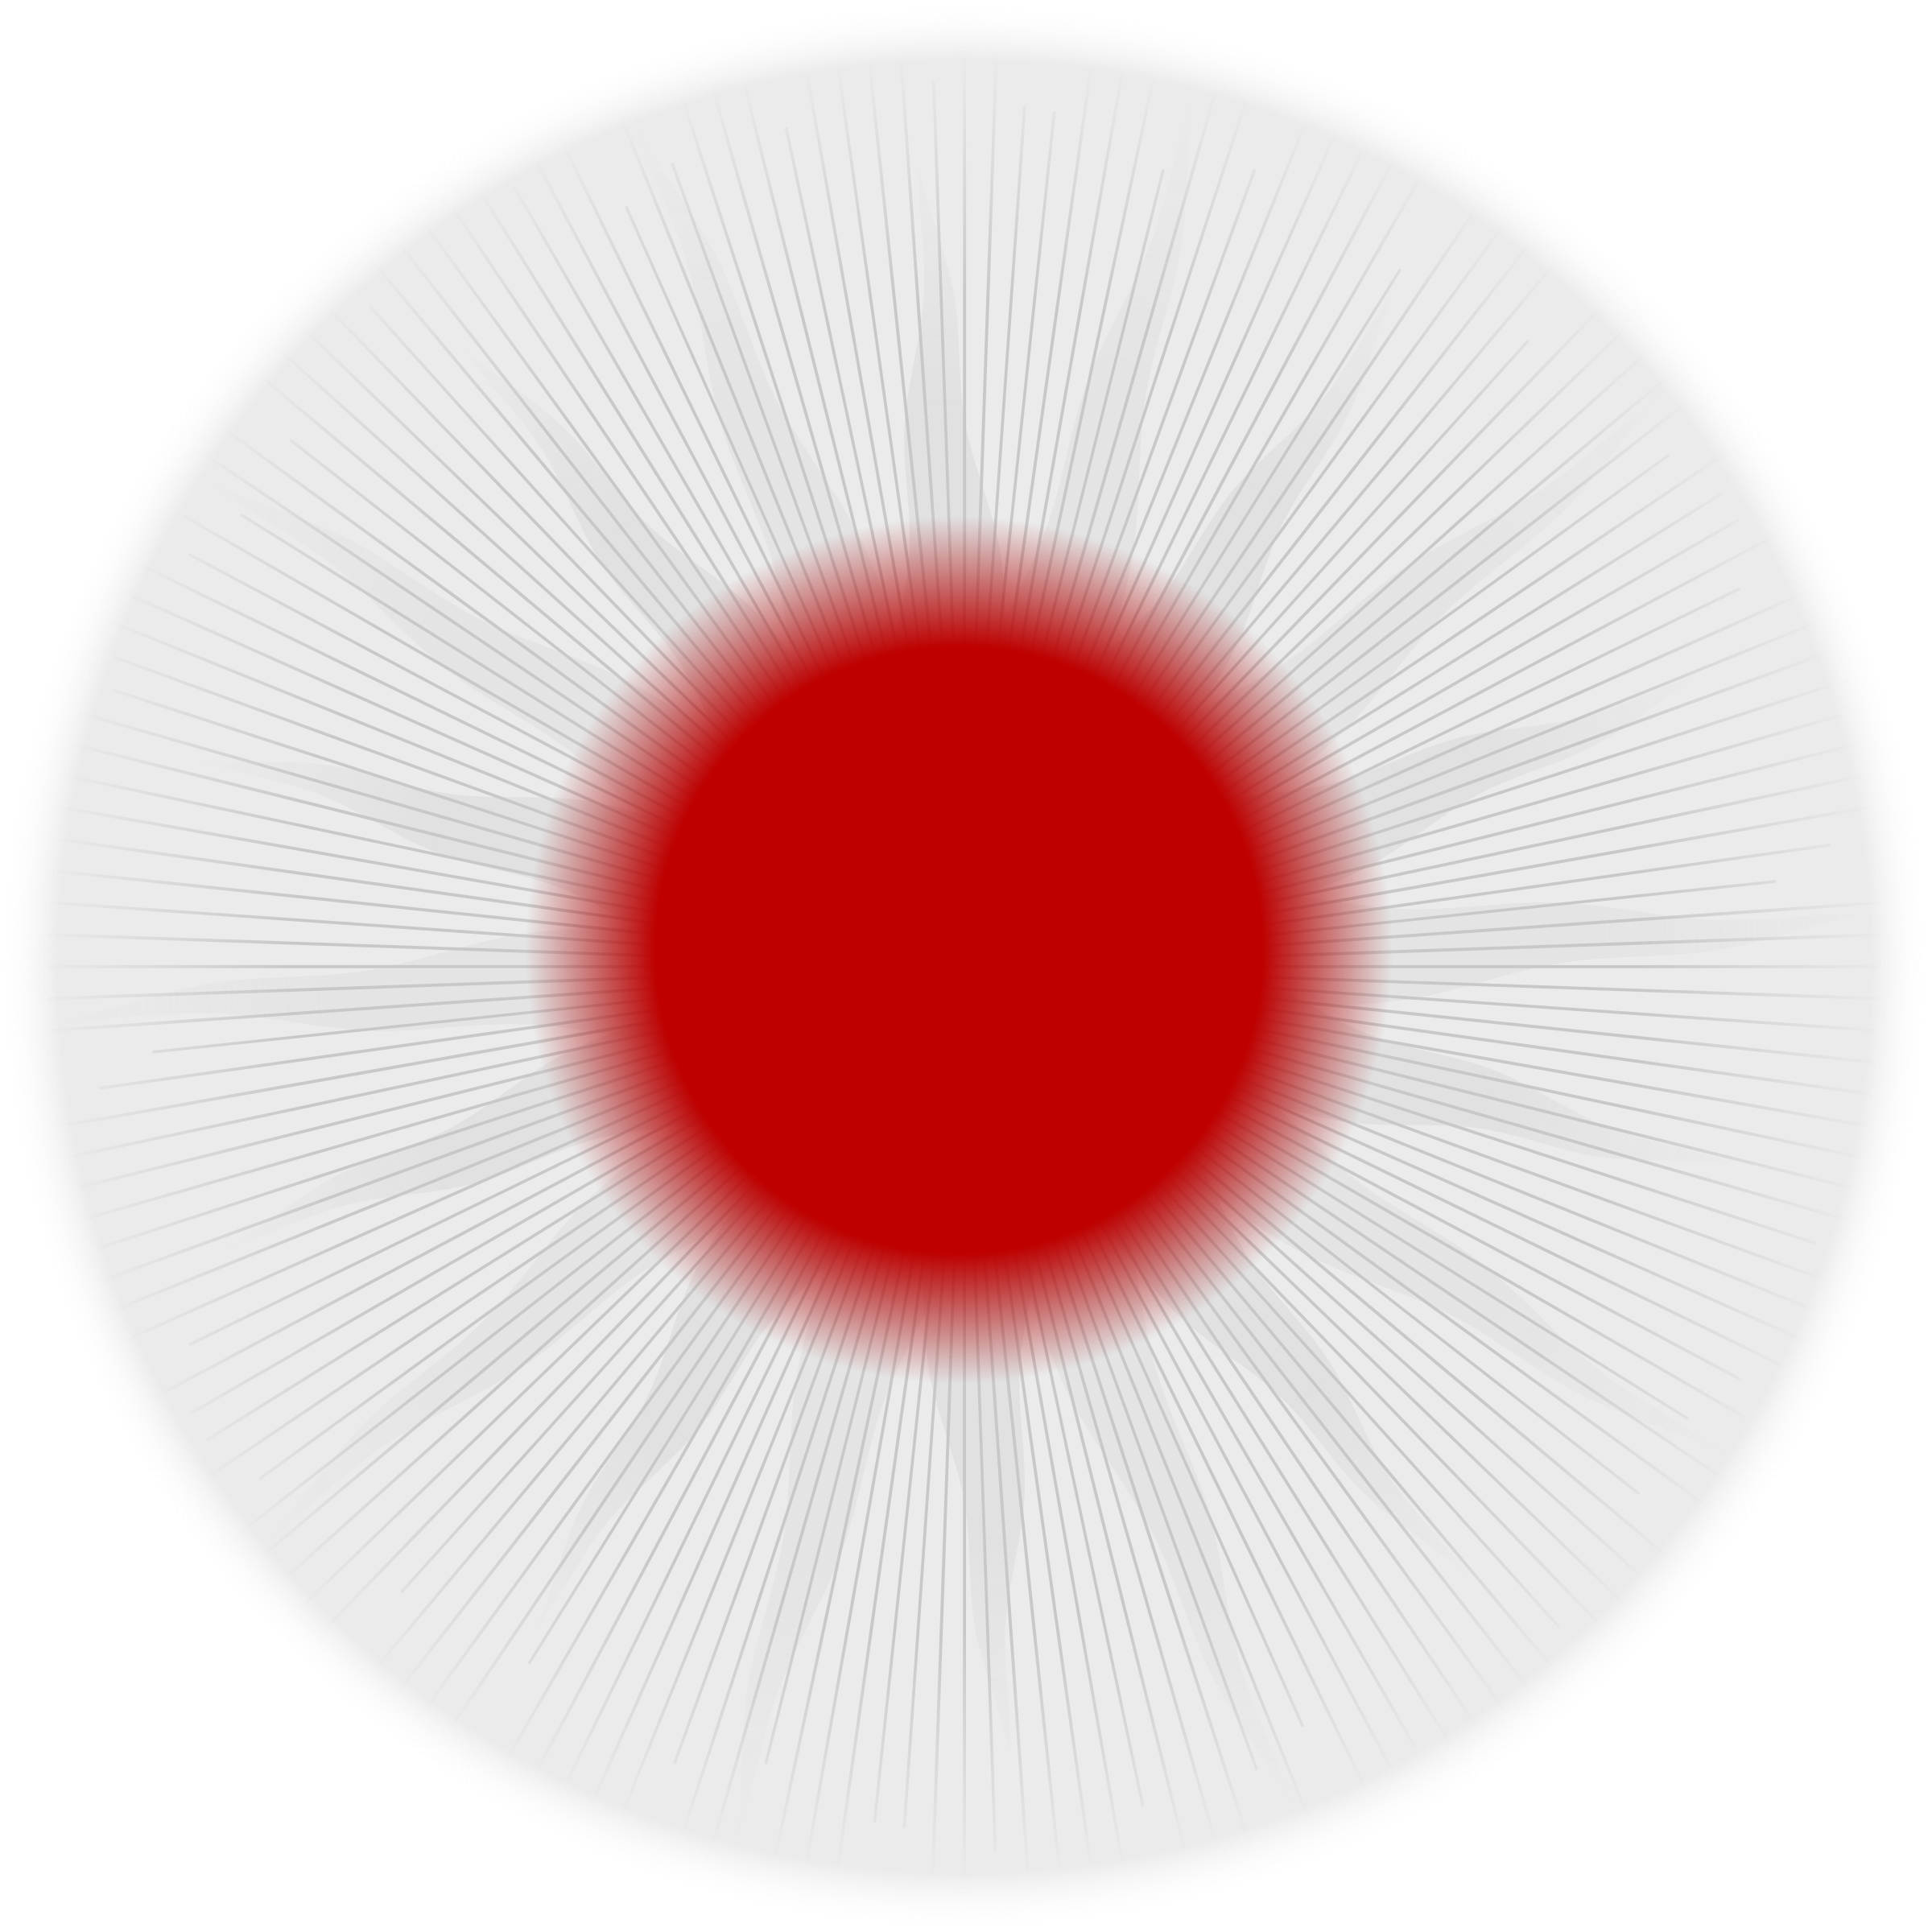 Rounded Japan flag by laobc